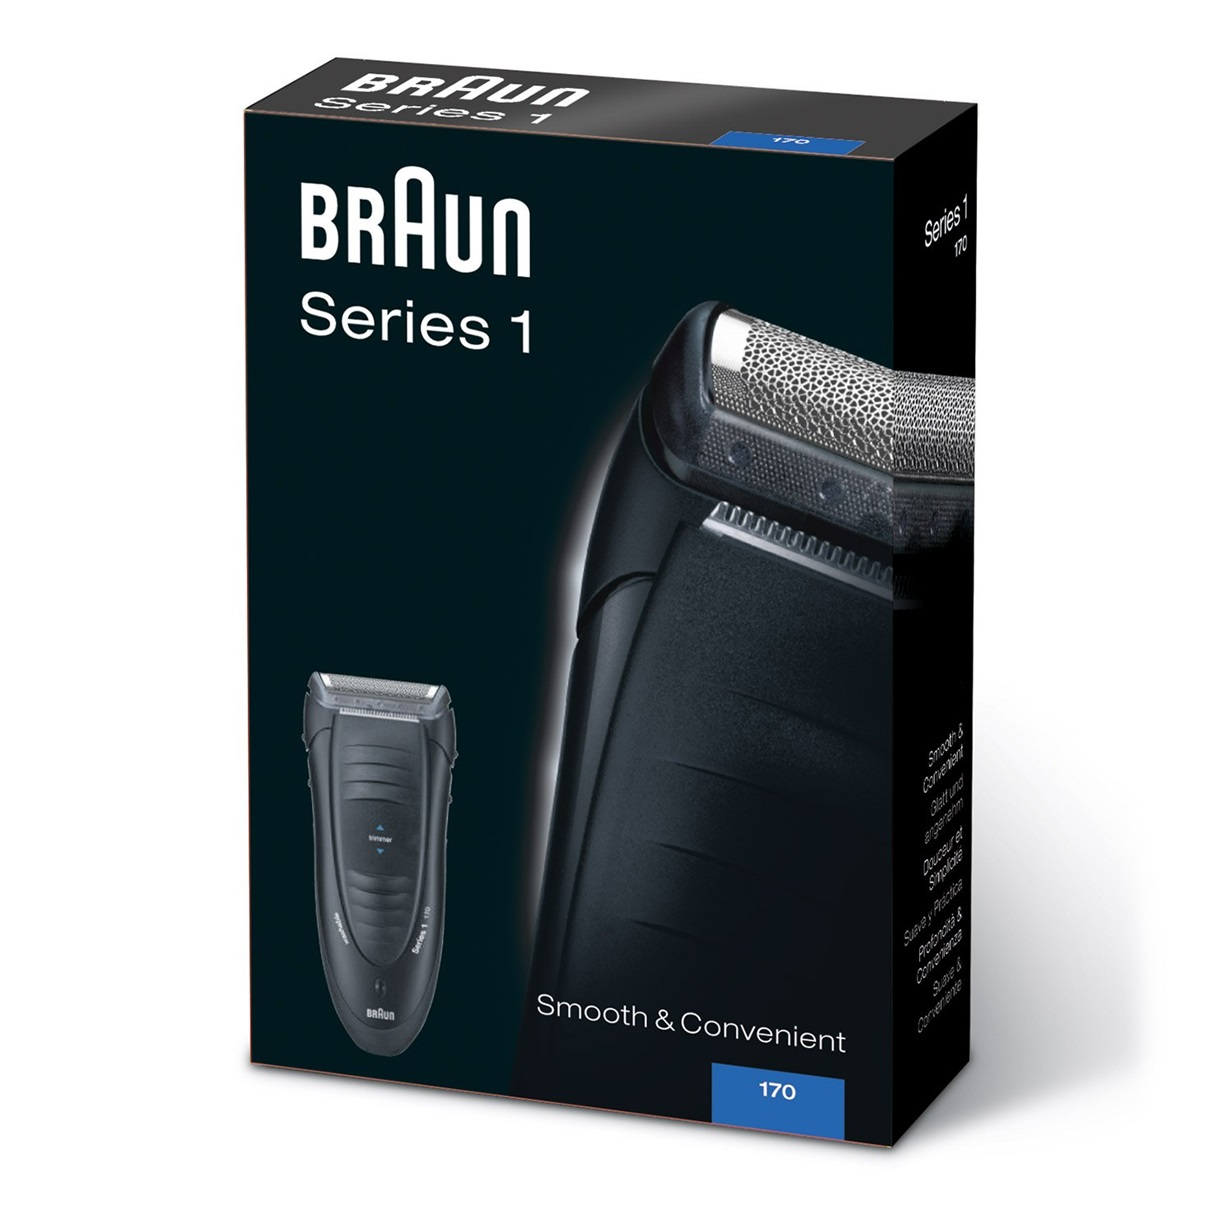 Braun Series 1 170s packaging